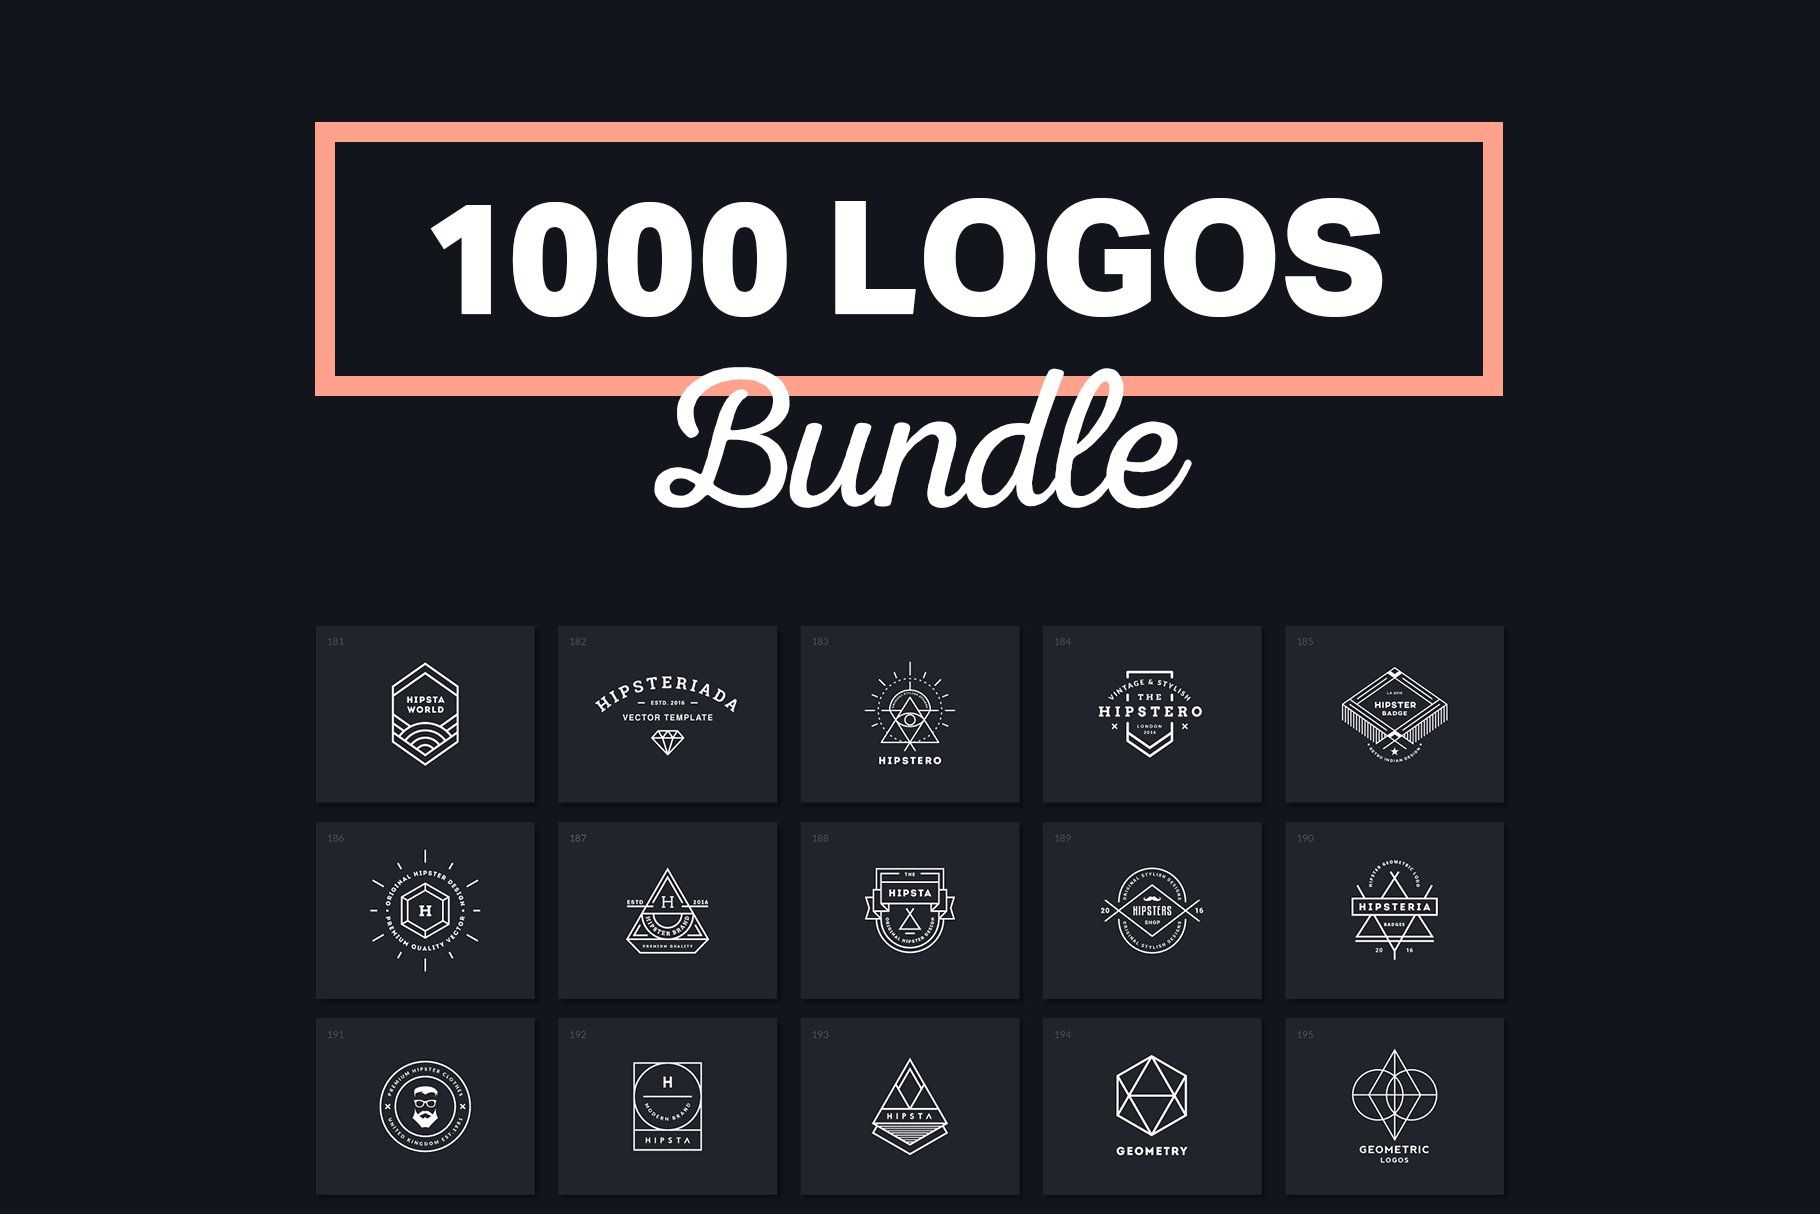 1000 Logos & Badges by Piotr Łapa on creativemarket